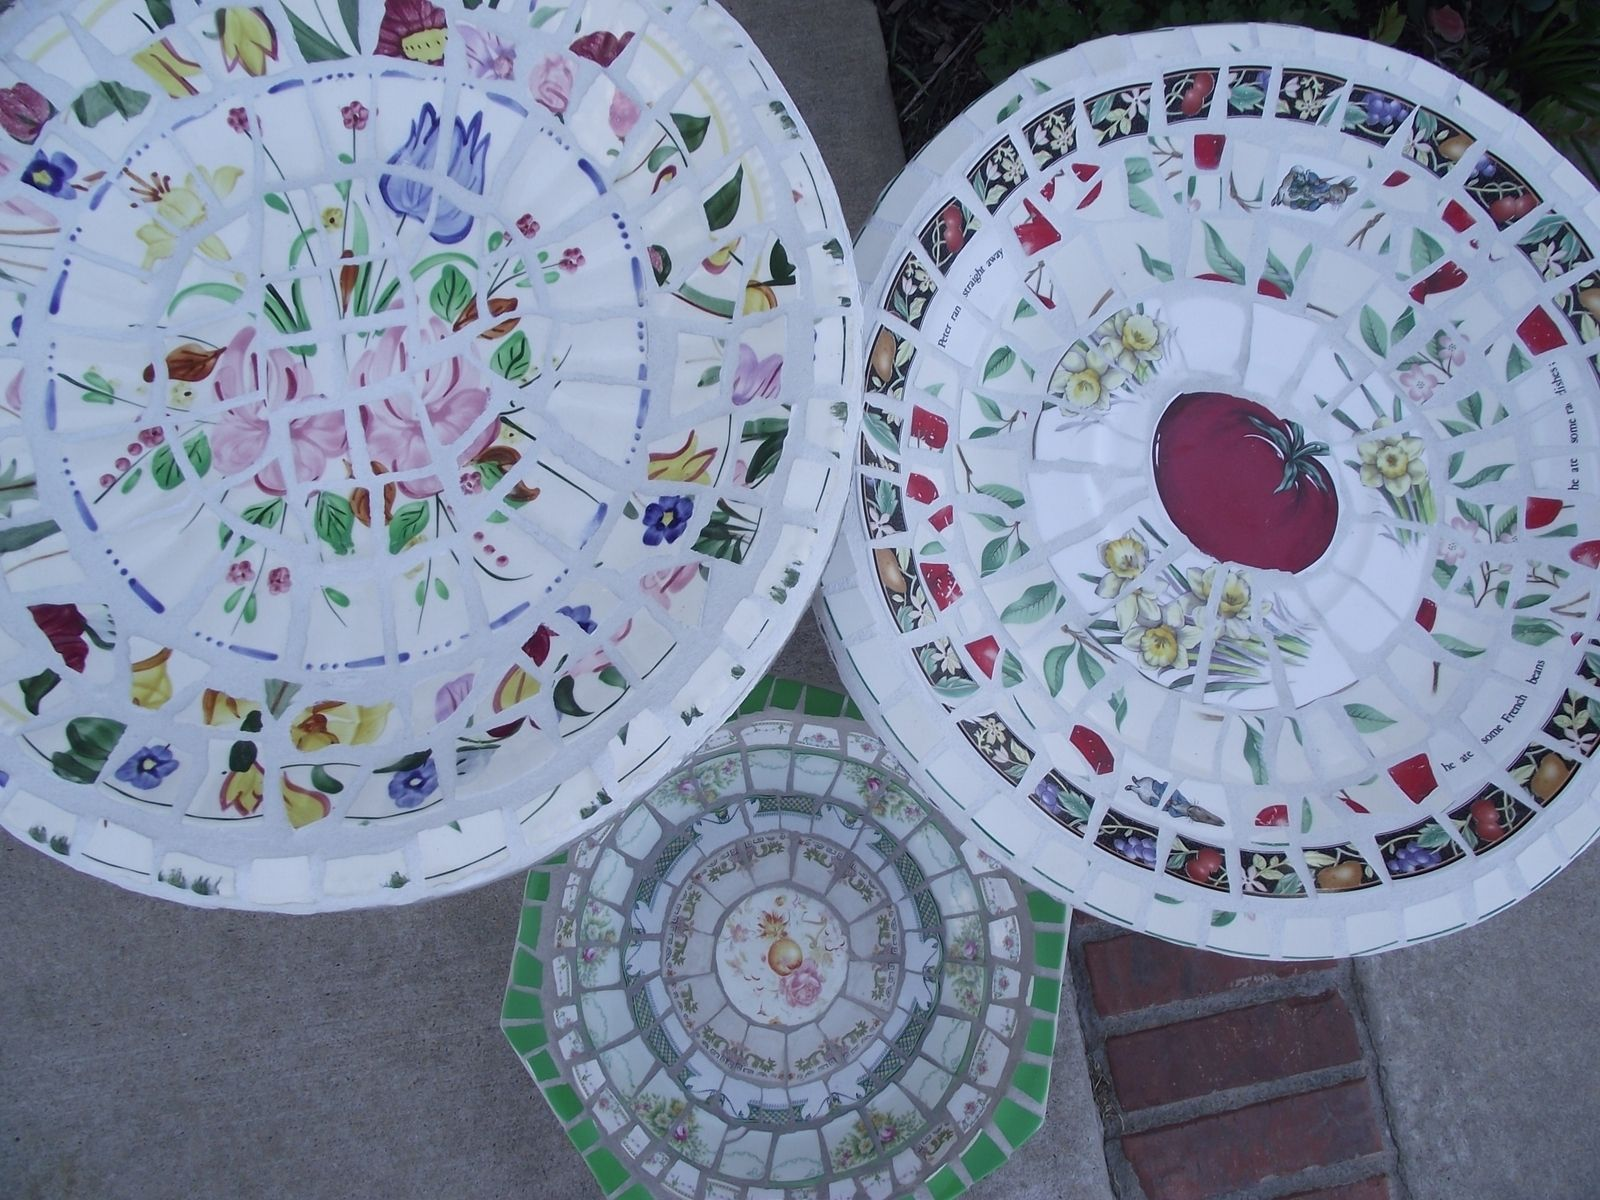 custom made mosaic concrete bird bath by vintage butterfly mosaics. Black Bedroom Furniture Sets. Home Design Ideas